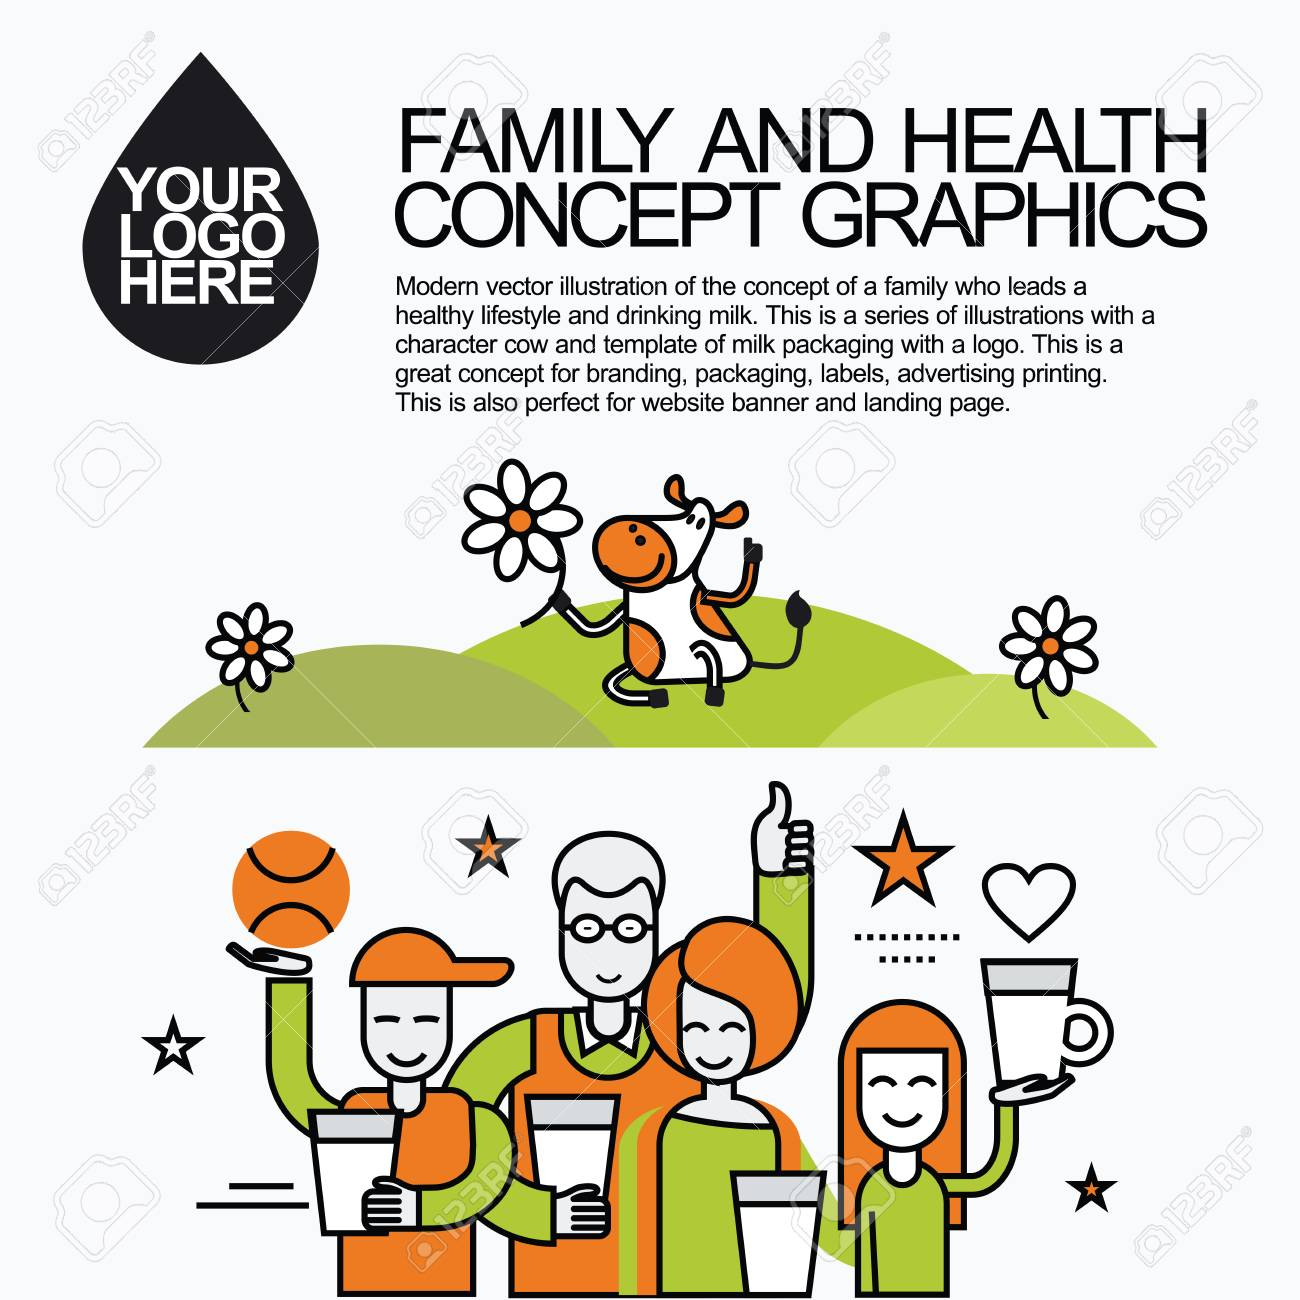 Concept of a family who leads a healthy lifestyle and drinking milk. Character cow for milk packaging with a logo for branding, packaging, advertising printing, for website banner and landing page. - 50800163